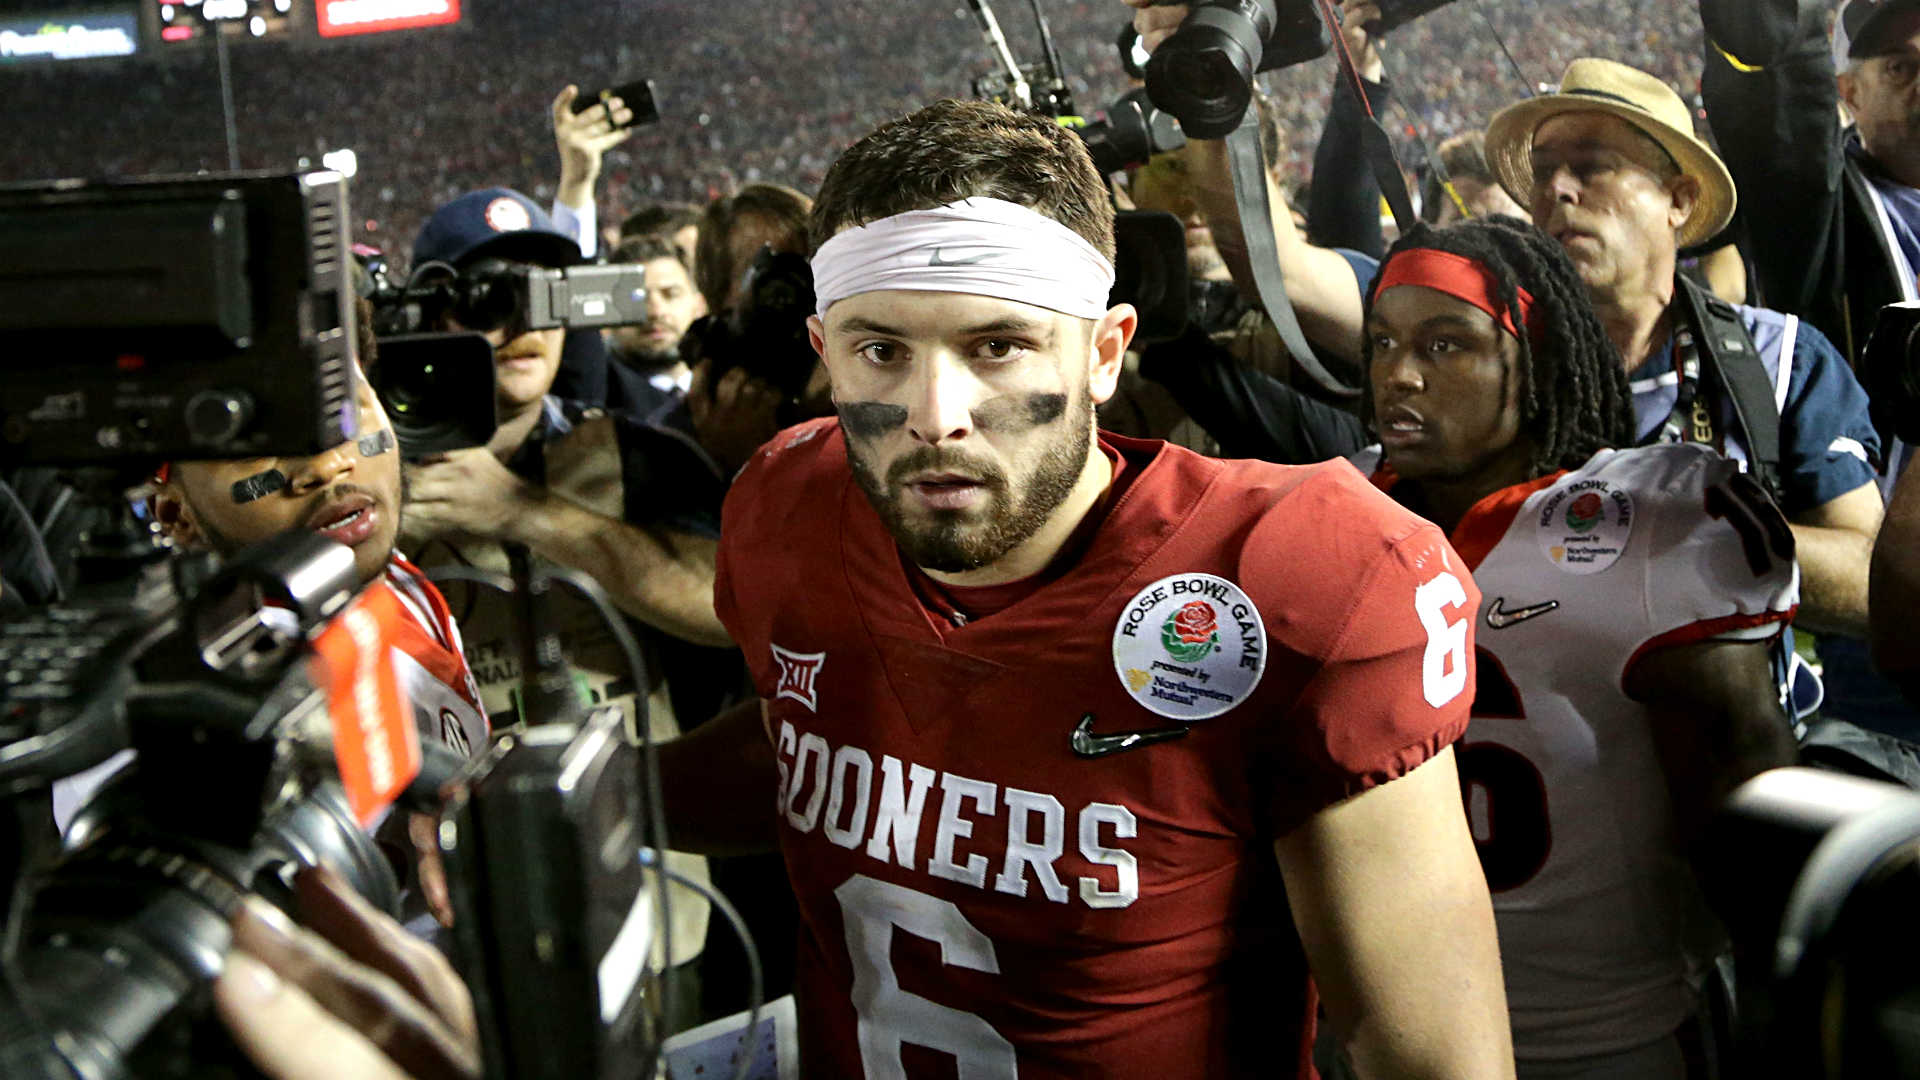 Baker-mayfield-010118-getty-ftr_u44qgcoe5bhz1ausvwld3c7fp